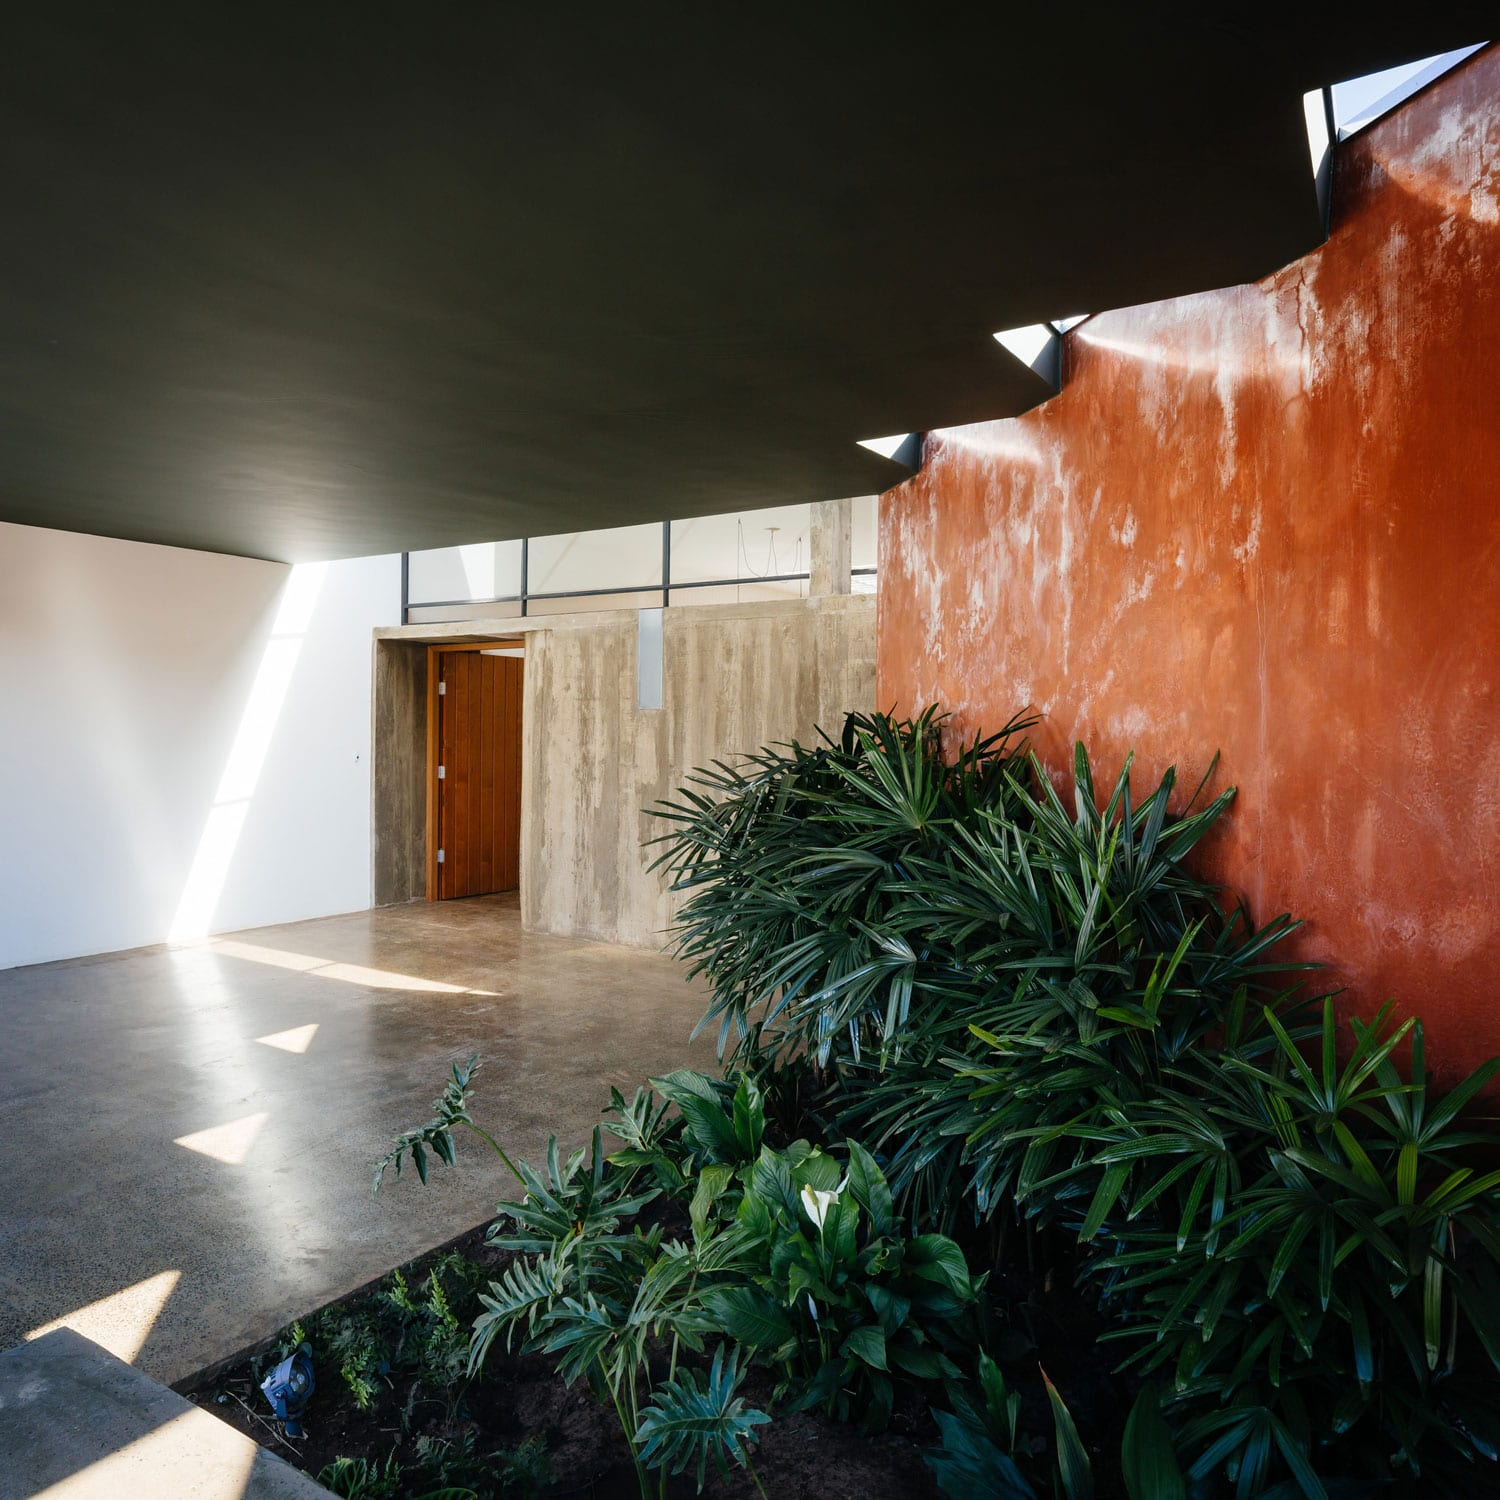 Ownerless House nº 01 in Avaré, Brazil by Vão | Yellowtrace